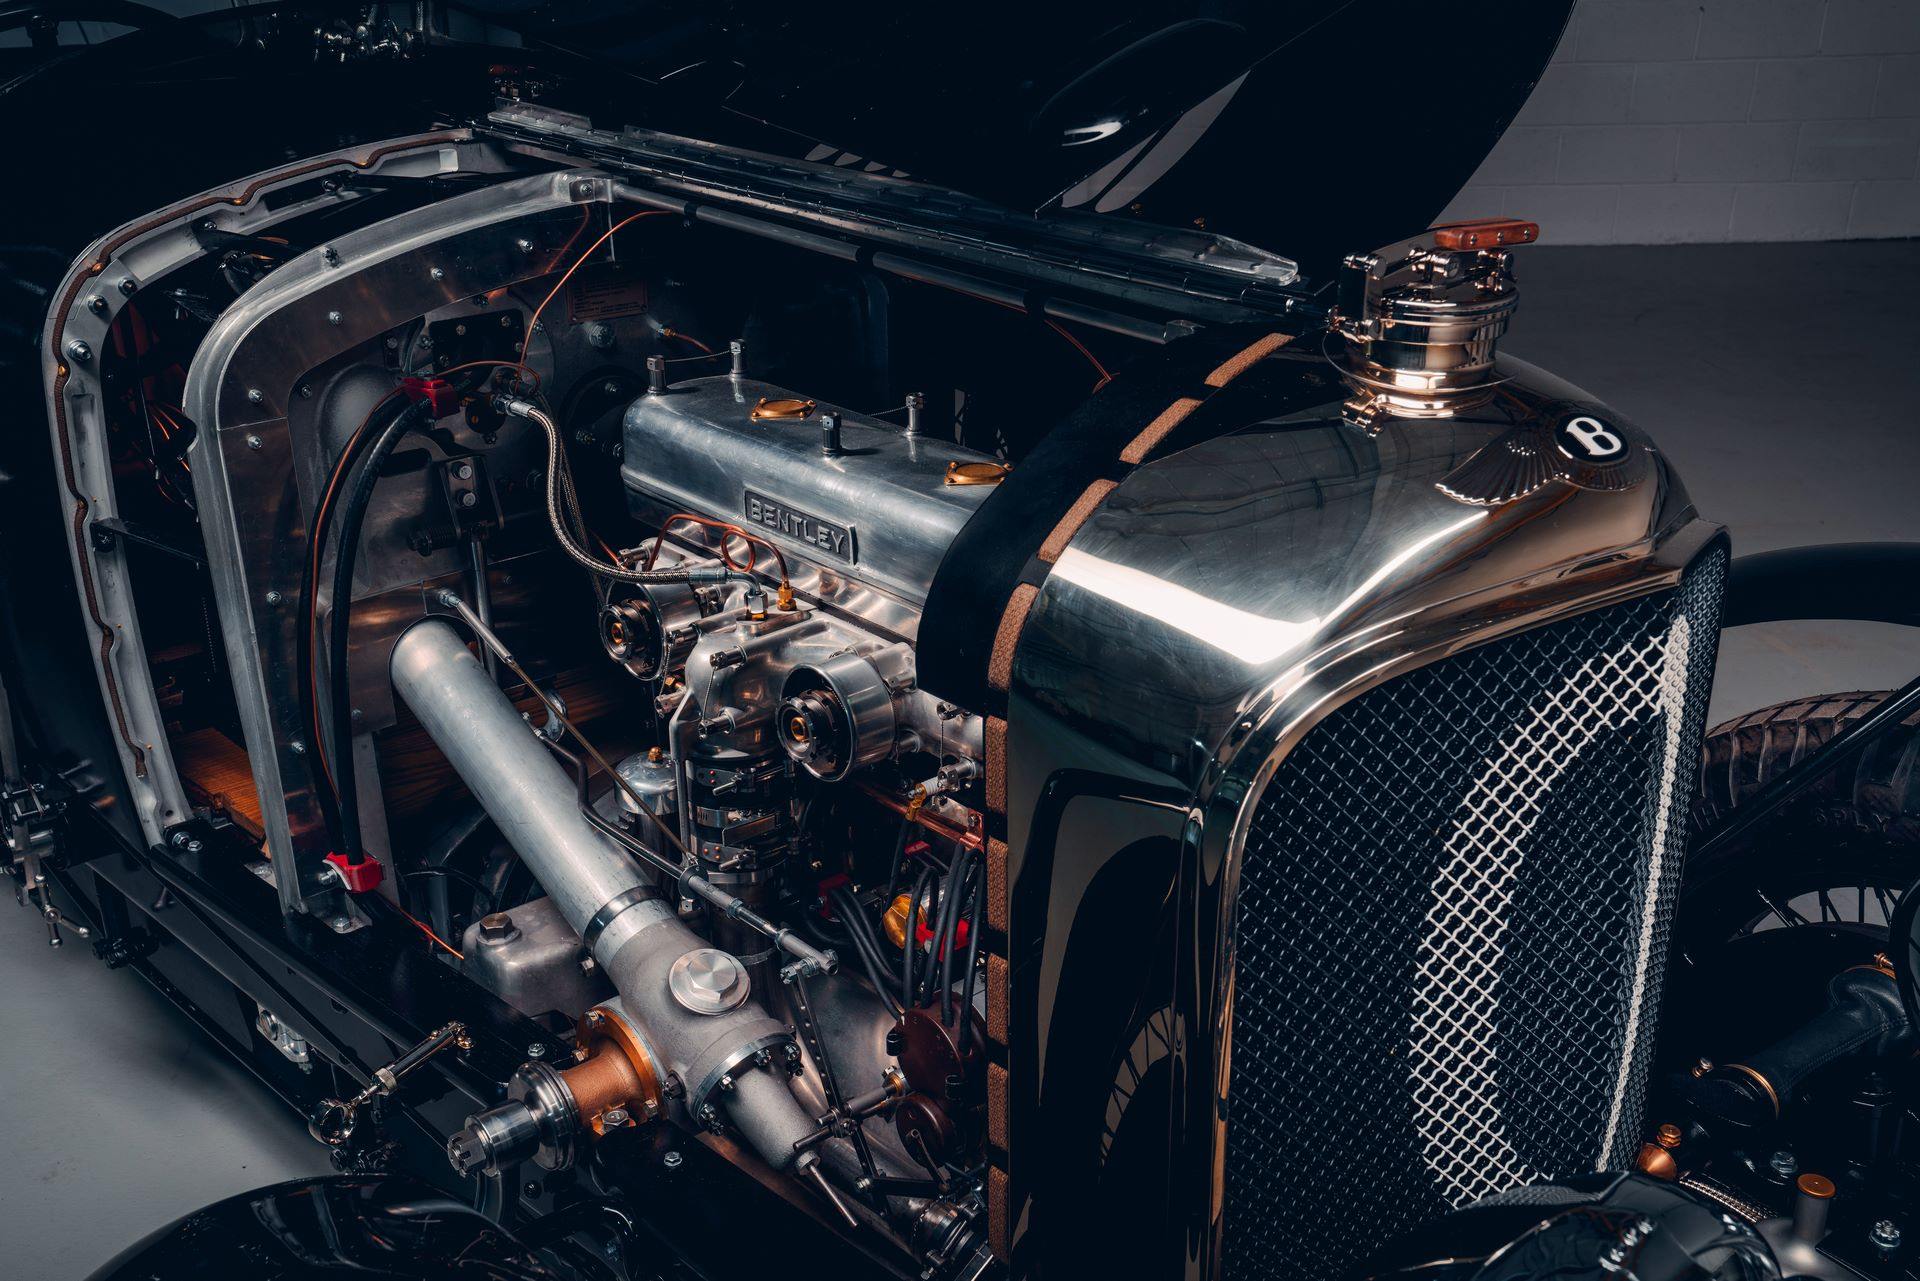 Bentley-Blower-Car-Zero-18